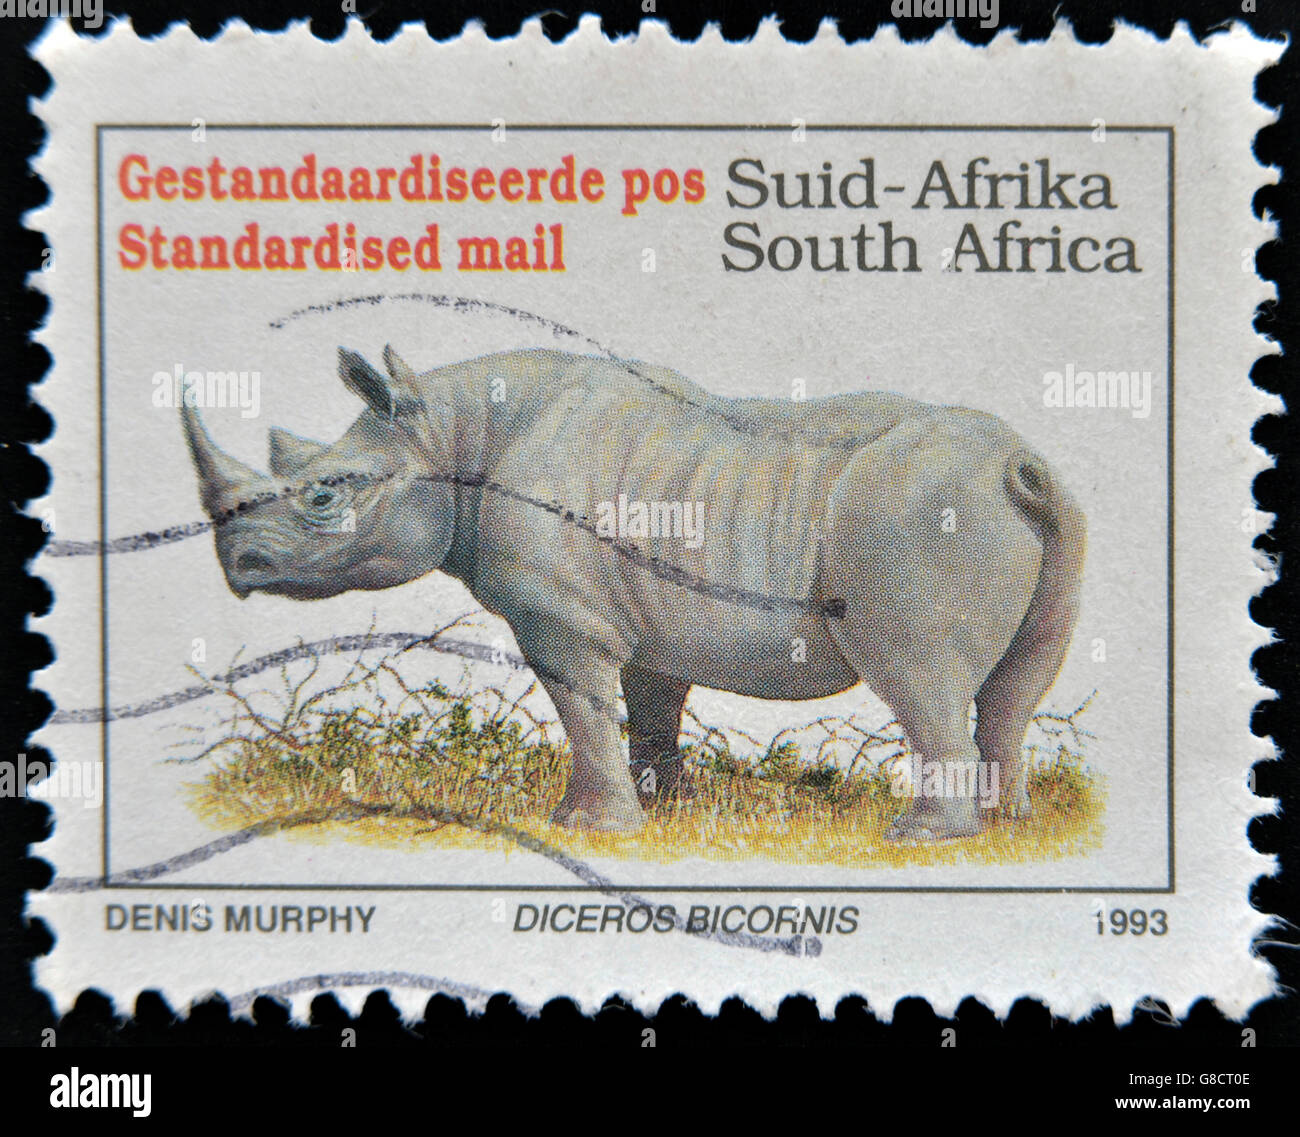 SOUTH AFRICA - CIRCA 1993: A stamp printed in South Africa shows a black rhinoceros, Diceros bicornis, circa 1993 - Stock Image